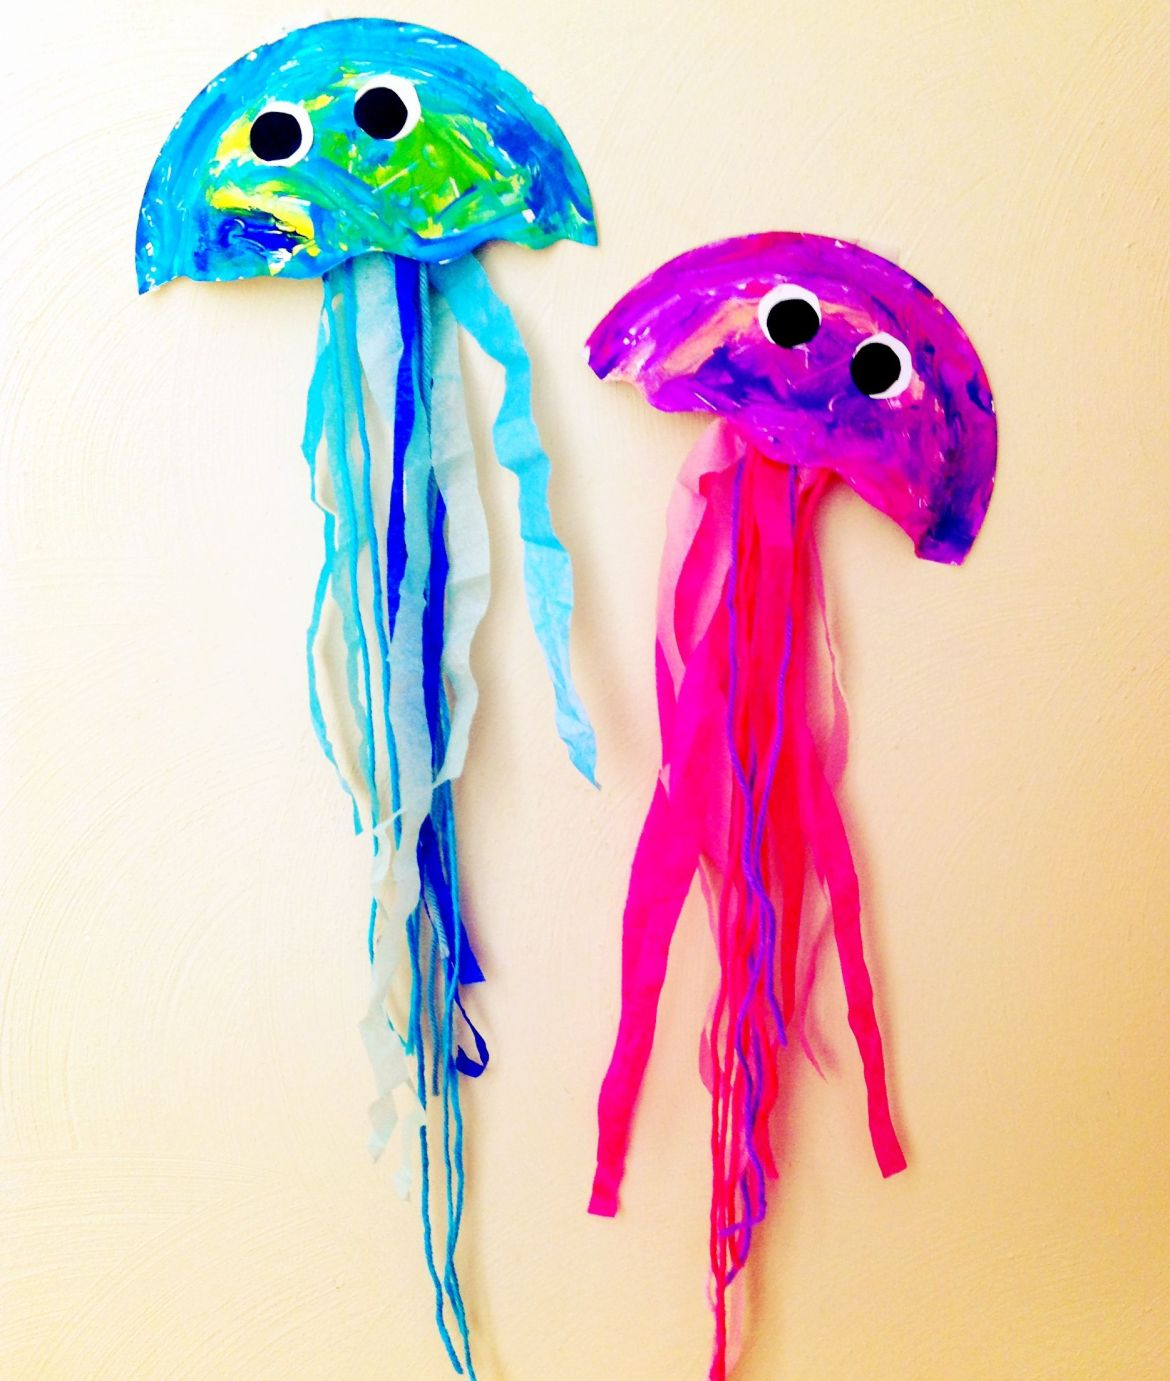 jellyfish made by using paper plates